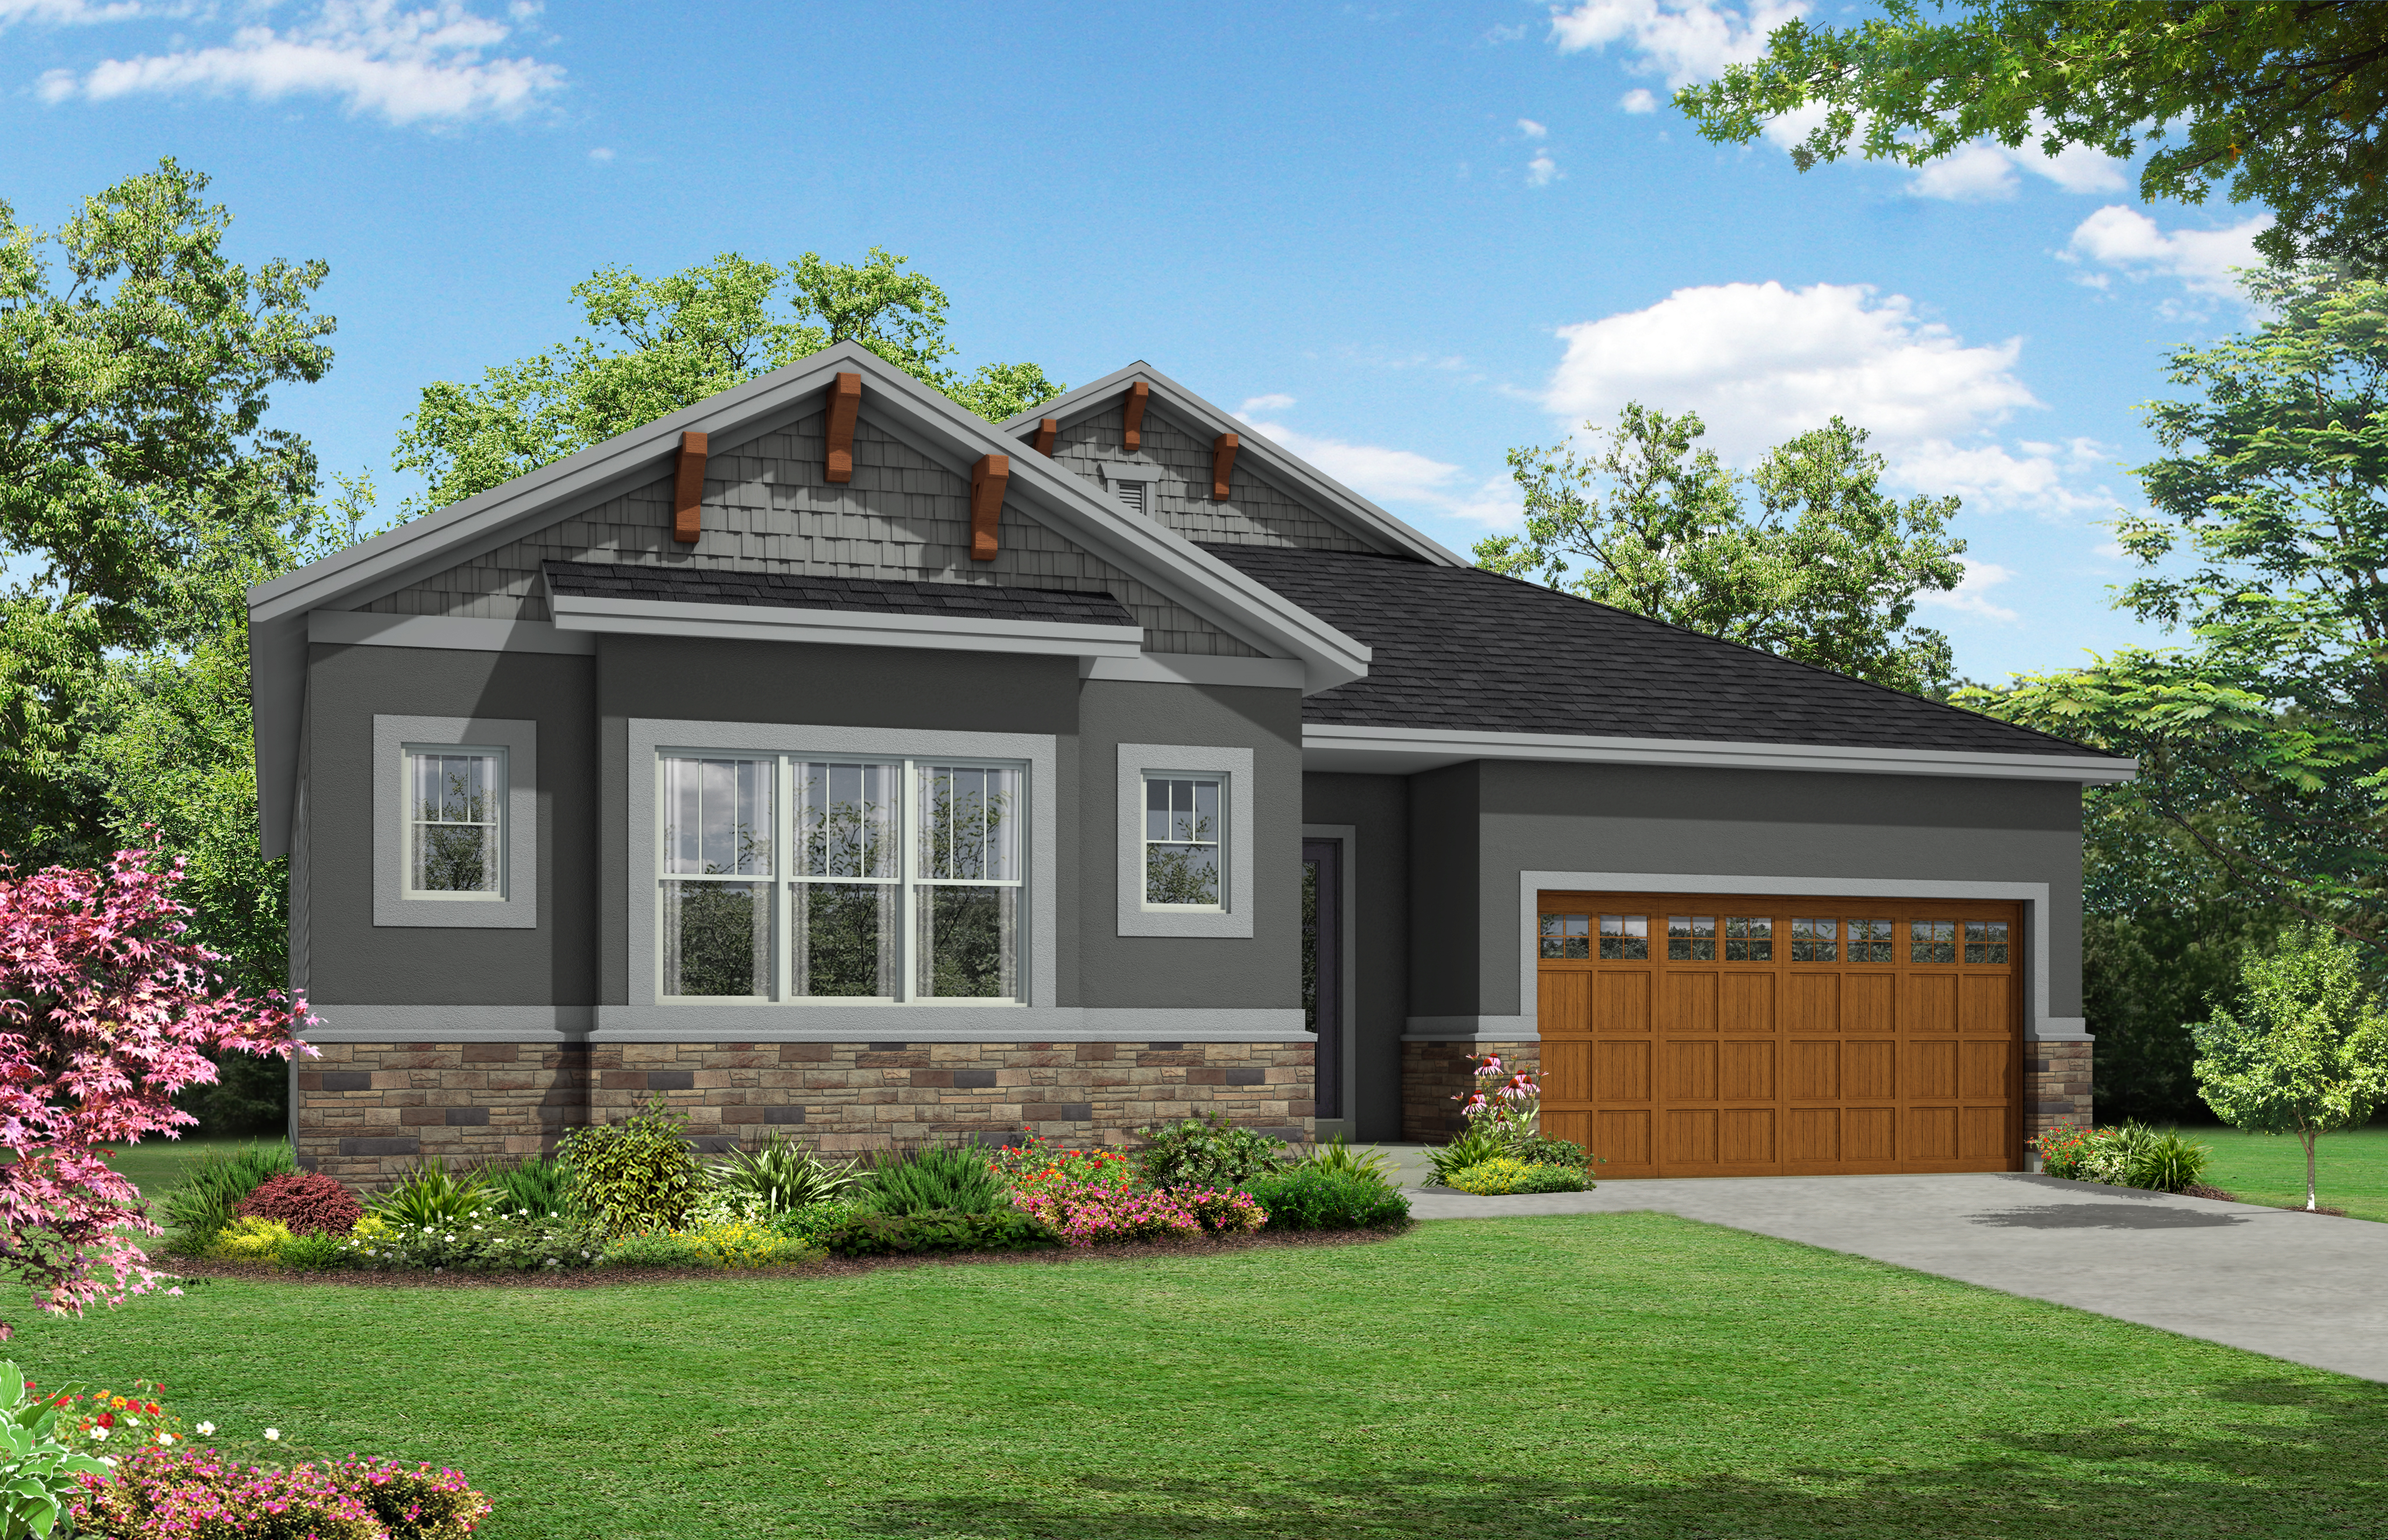 Lc_homes-the_ridge_at_mariana_butte_mickelson_b_01